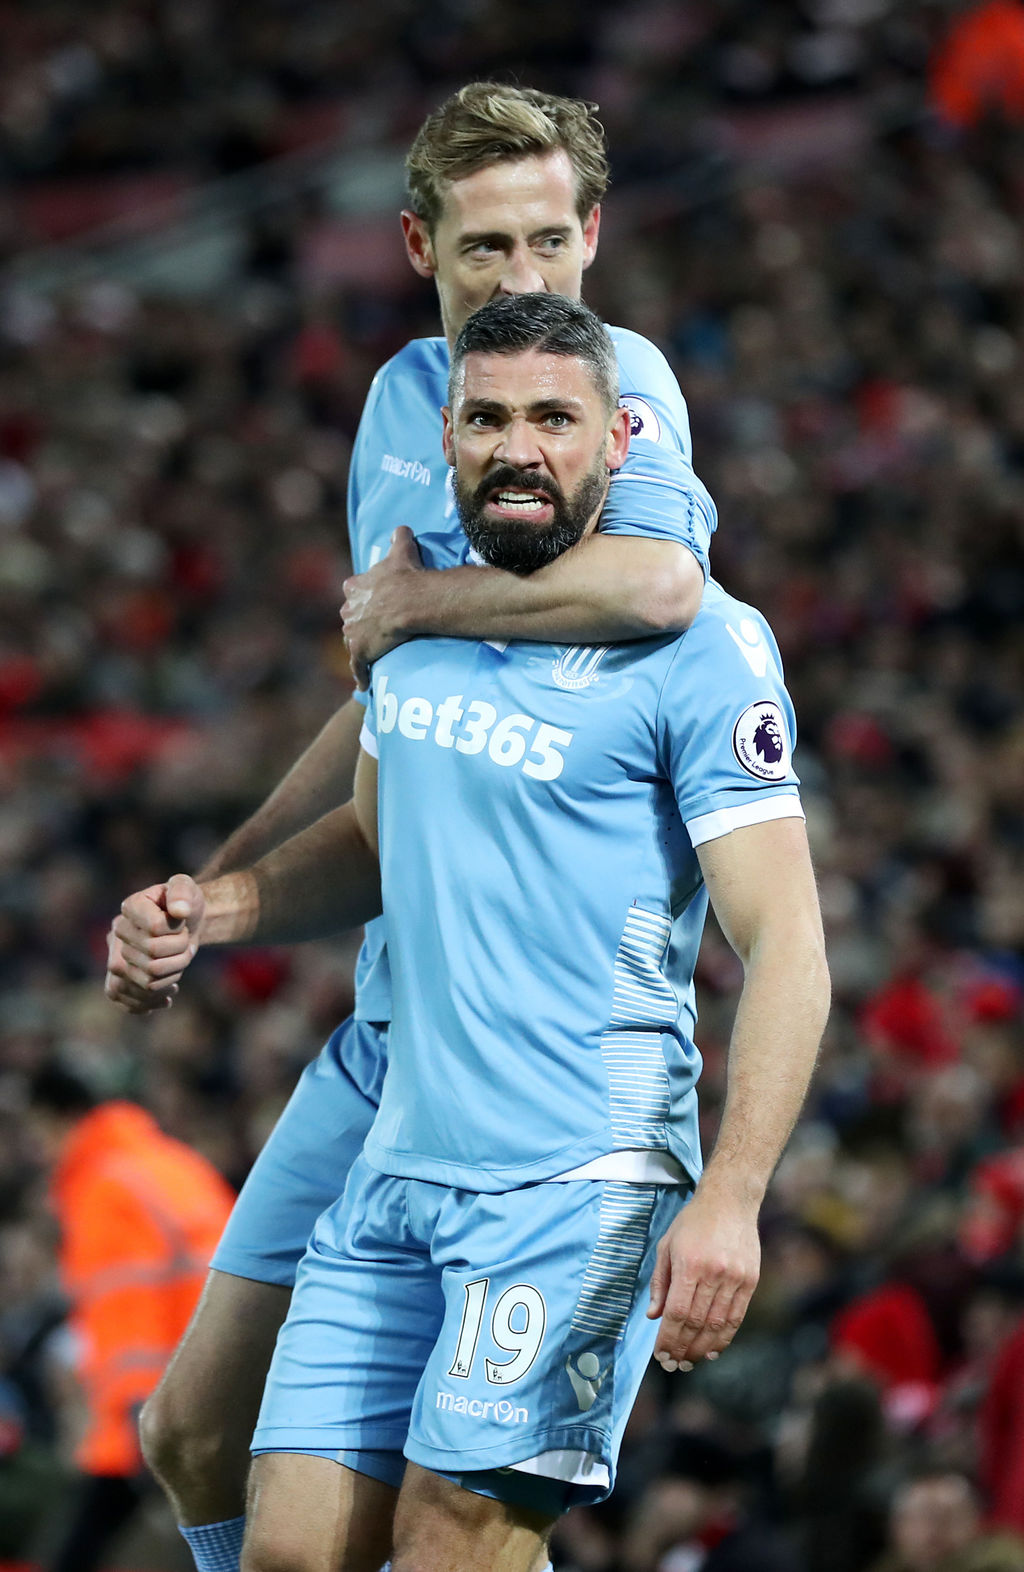 Stoke City's Jonathan Walters, front, celebrates scoring his side's first goal of the game during their English Premier League soccer m...